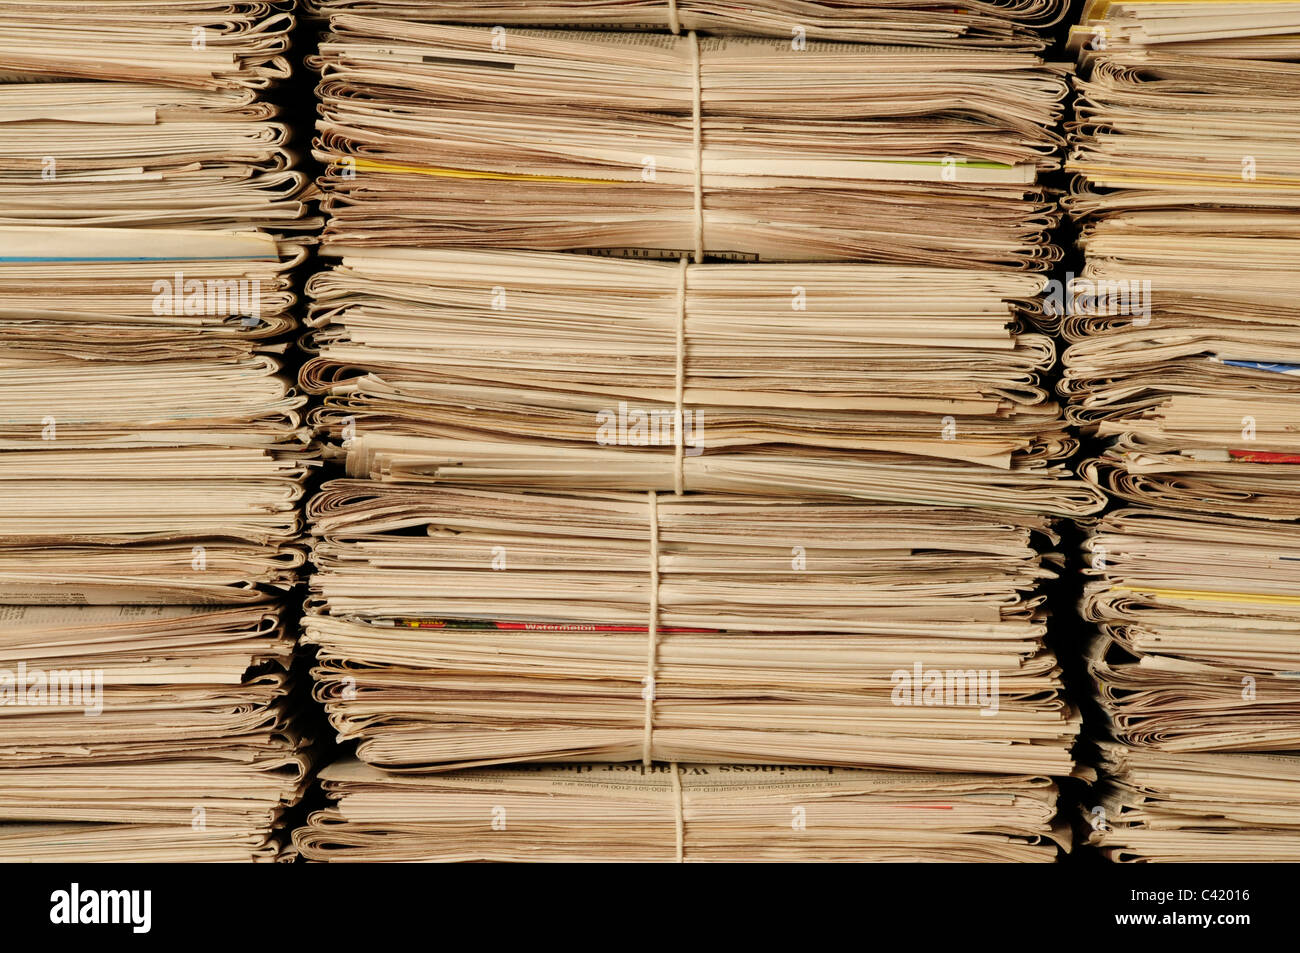 Close-up of piles of newspapers to be recycled - Stock Image